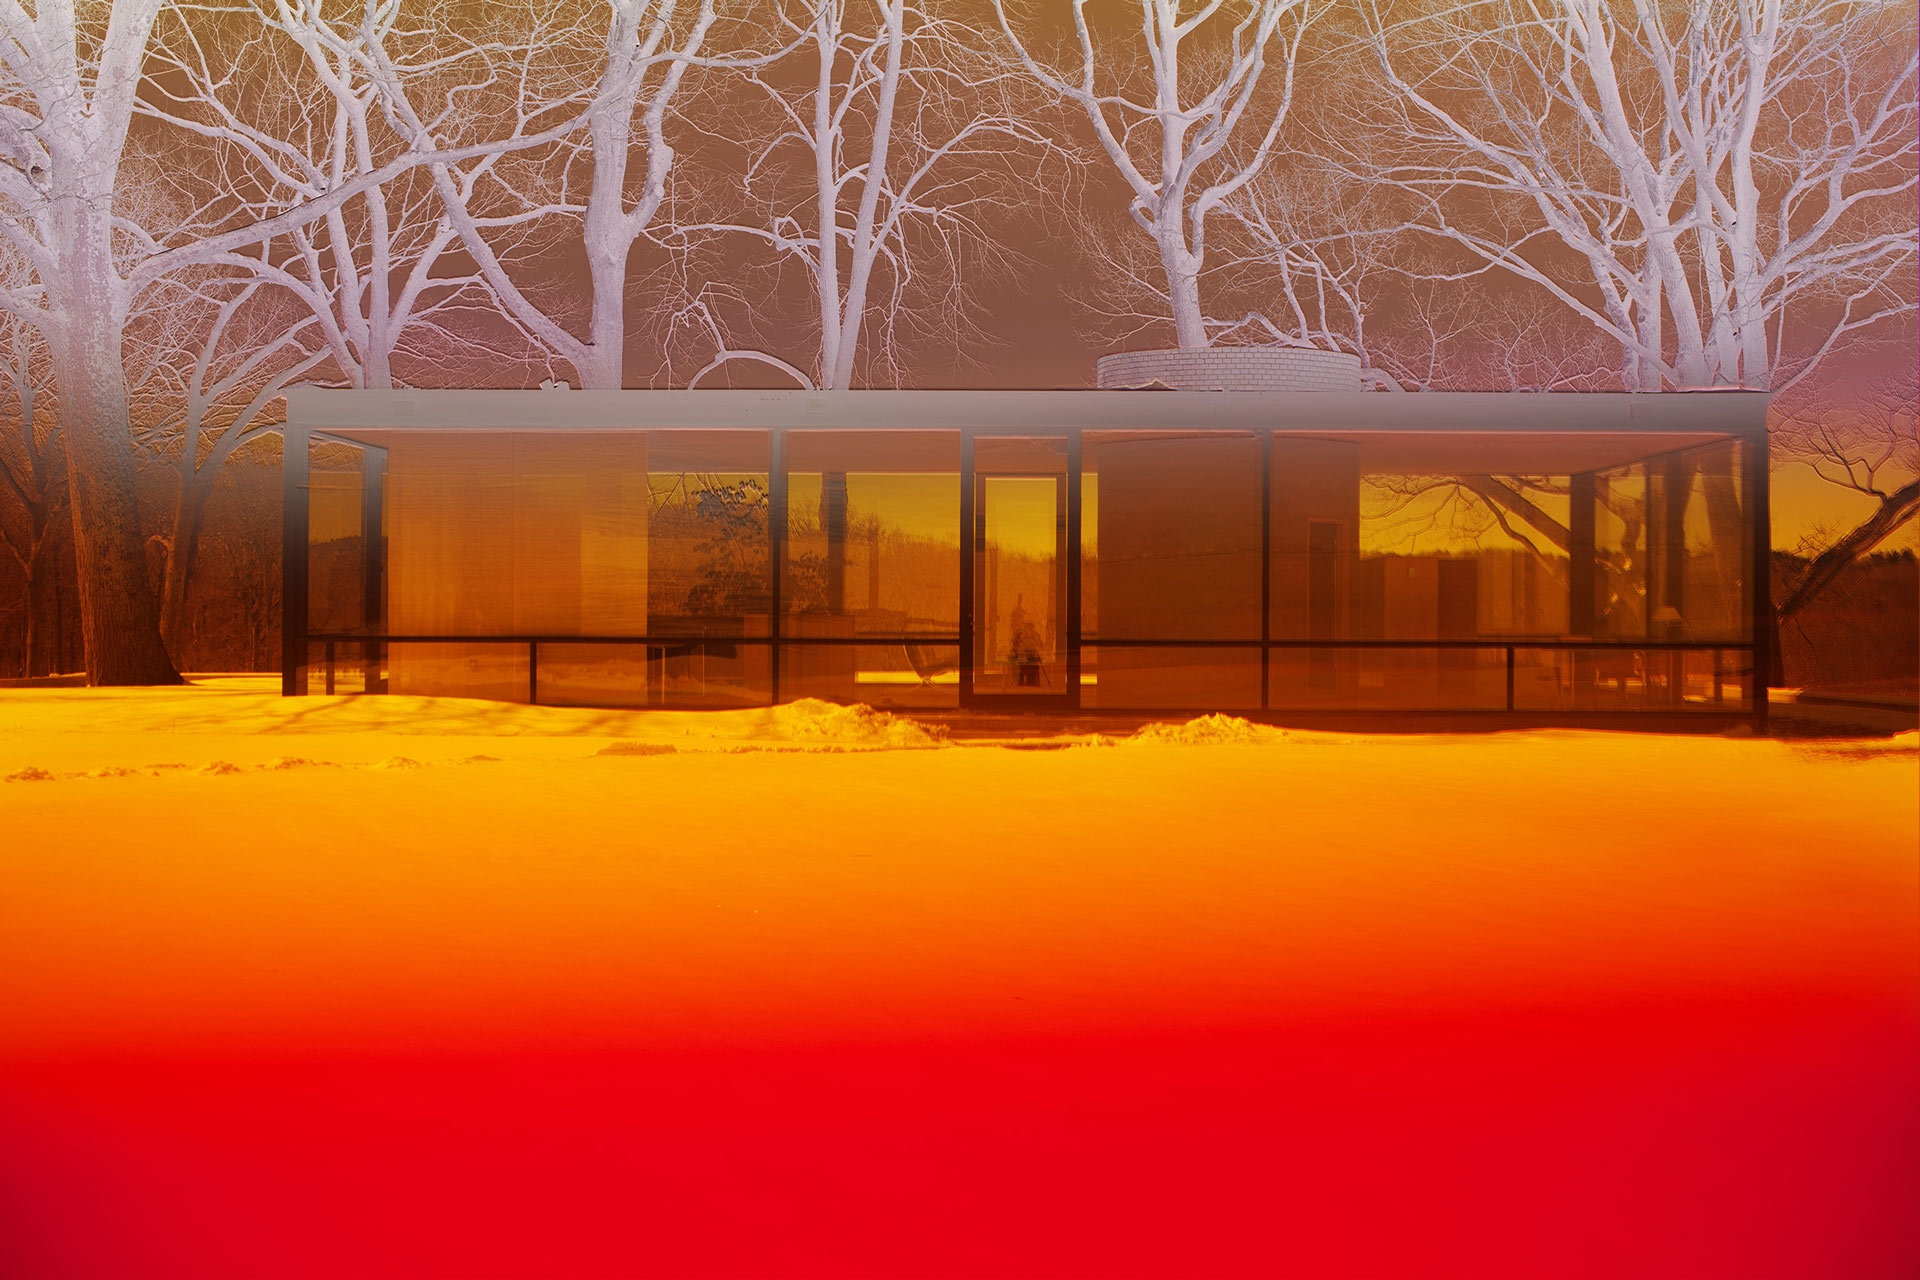 A photograph by James Welling, titled 0472, dated 2017.